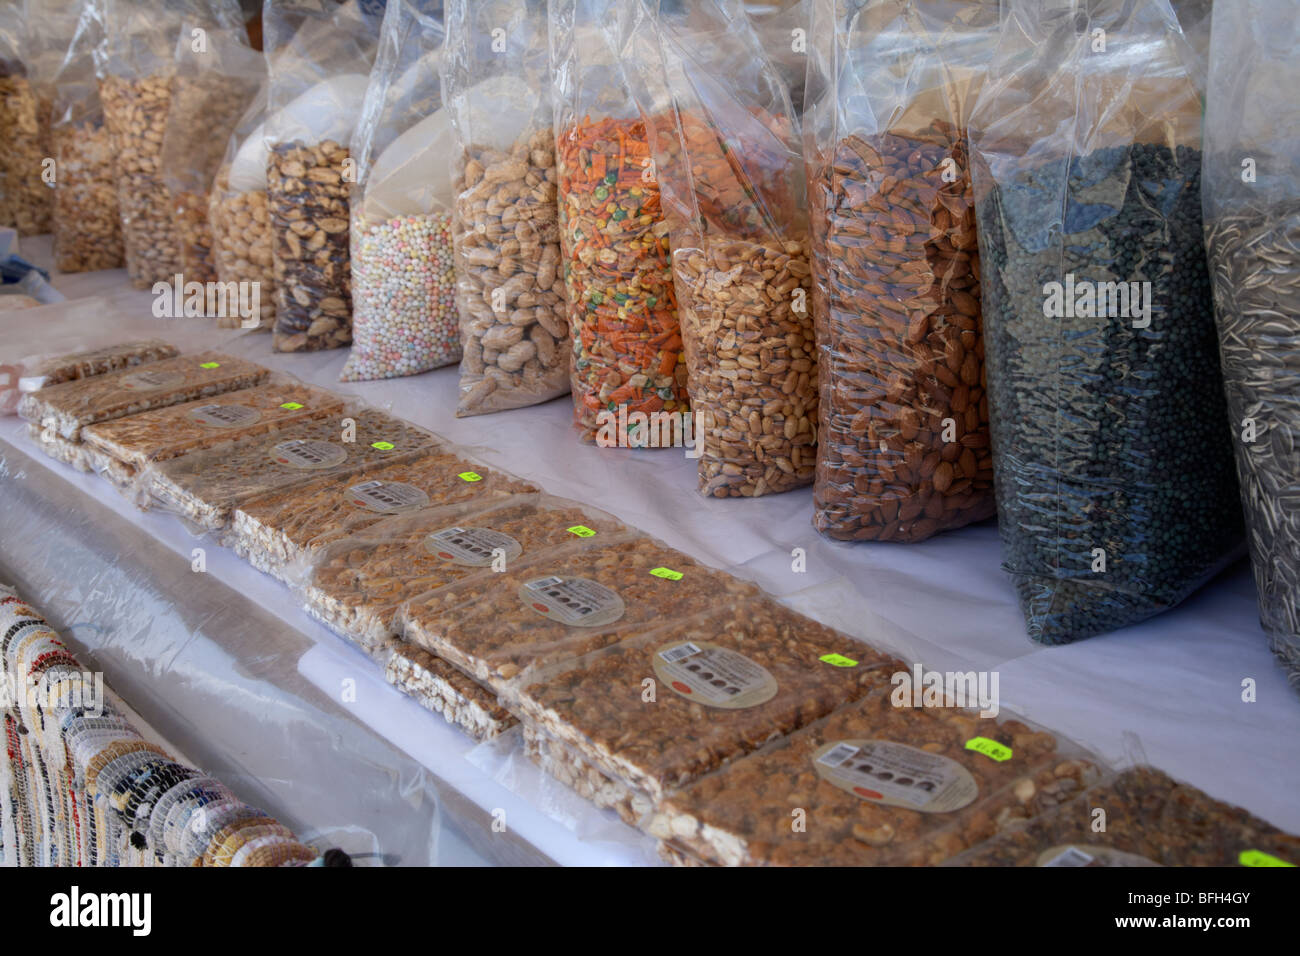 various fresh nuts seeds and sweets for sale on a stall in the republic of cyprus europe - Stock Image